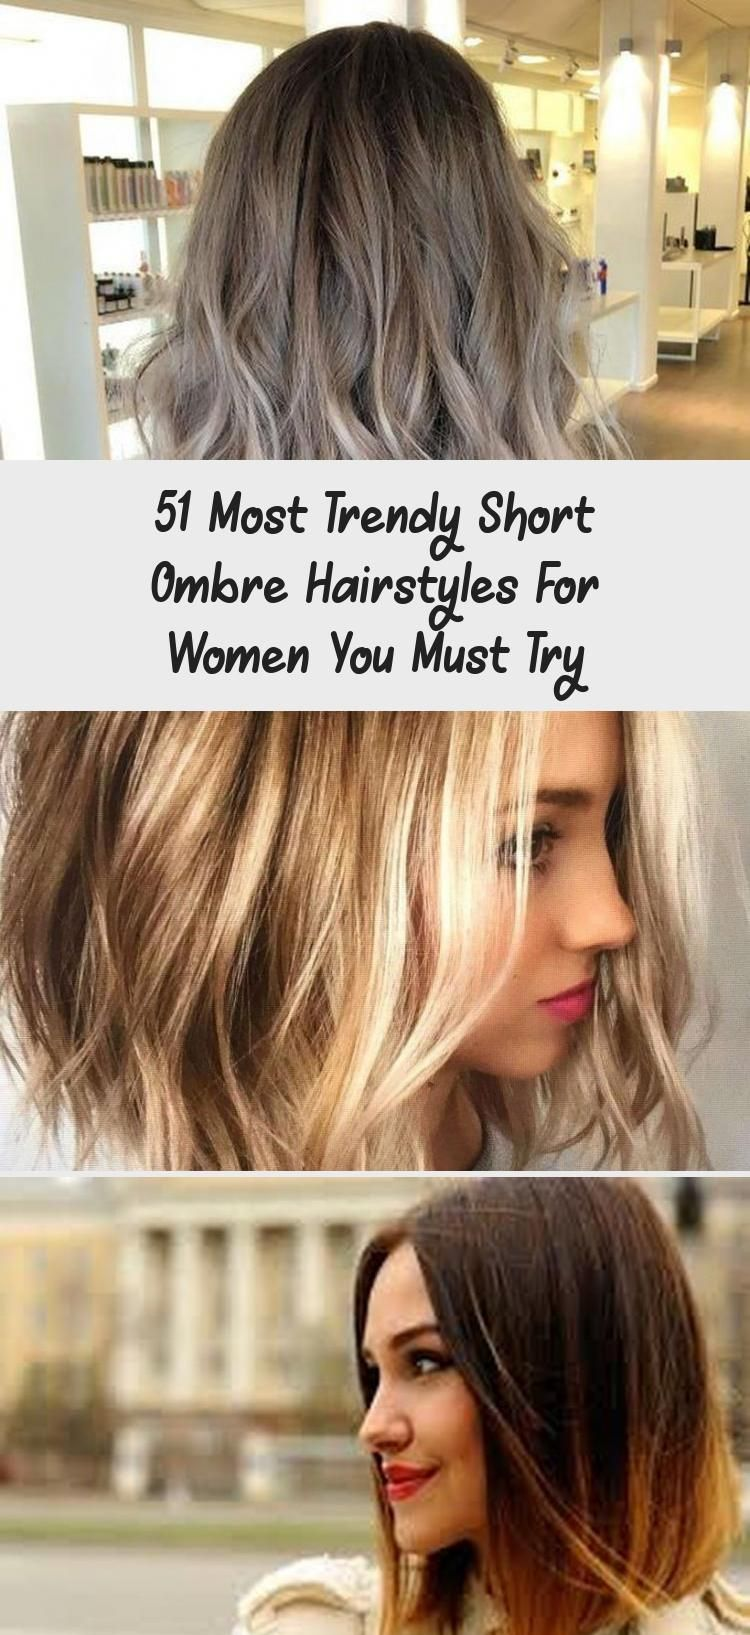 51 Most Trendy Short Ombre Hairstyles For Women You Must Try Hairstyle In 2020 Short Ombre Hair Short Ombre Hair Styles